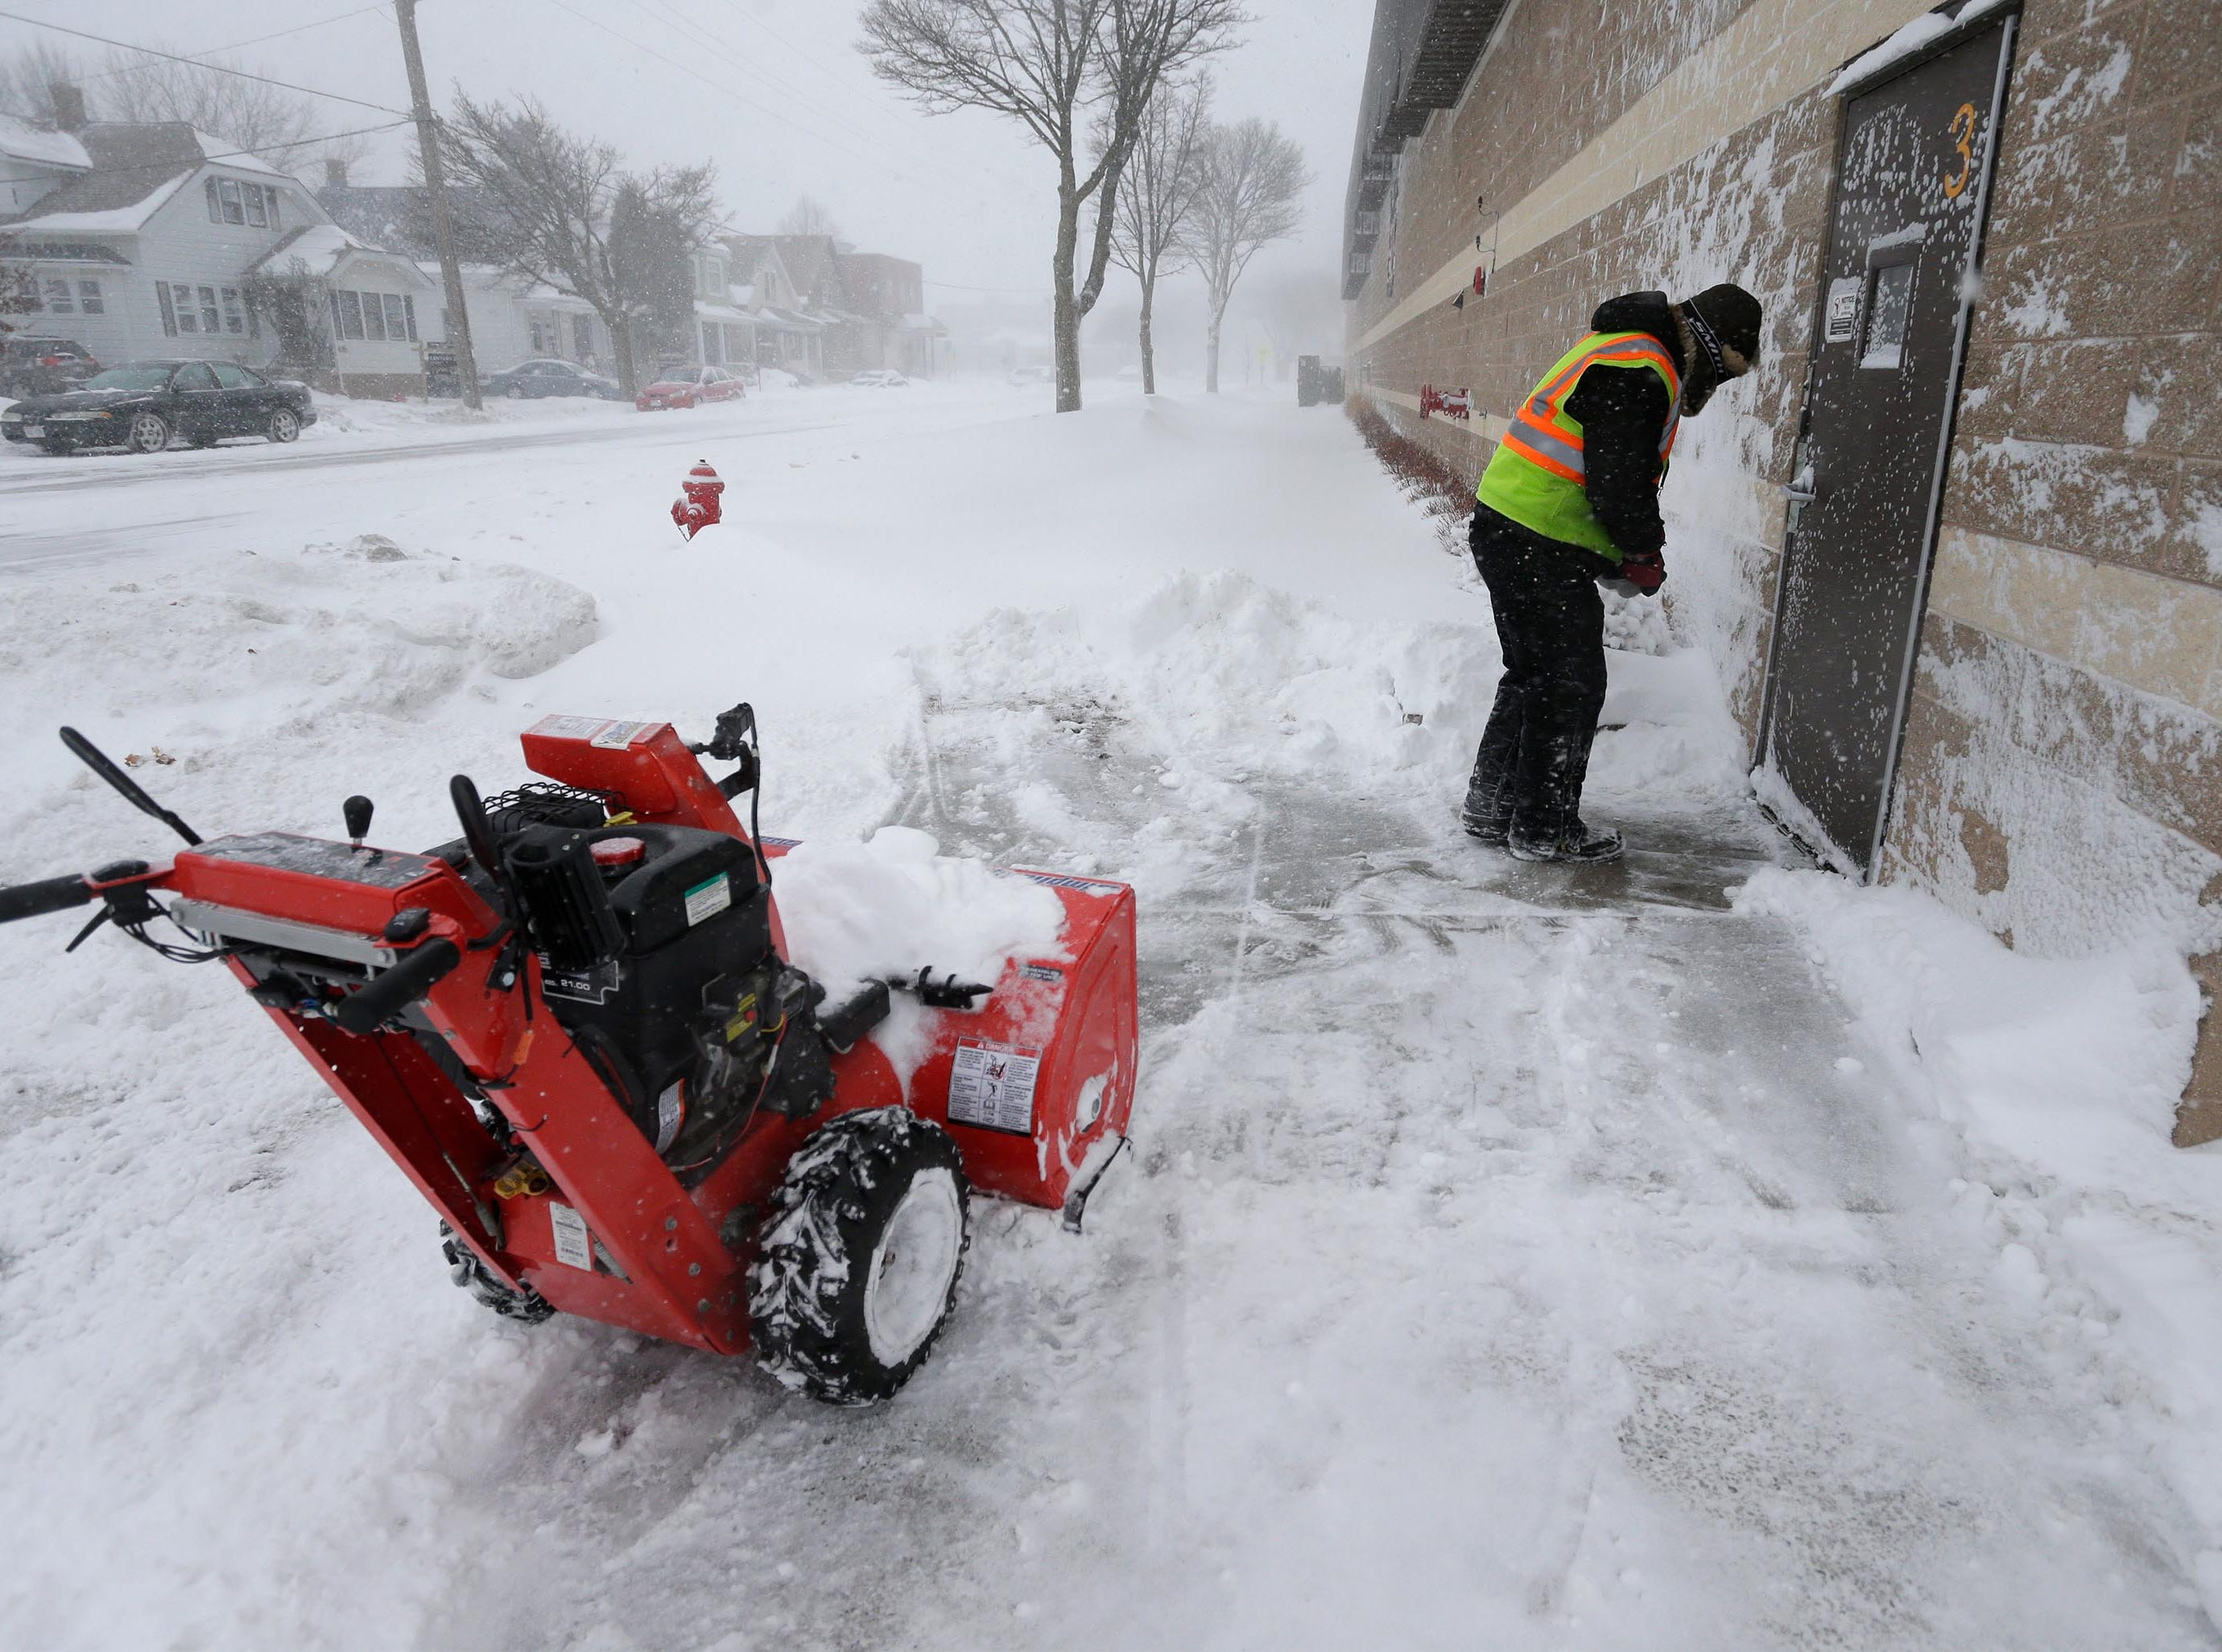 Jim Schwaonek of Paper Box Company shovels snow from around an entrance at the firm, Monday, Jan. 28, 2019, in Sheboygan, Wis.